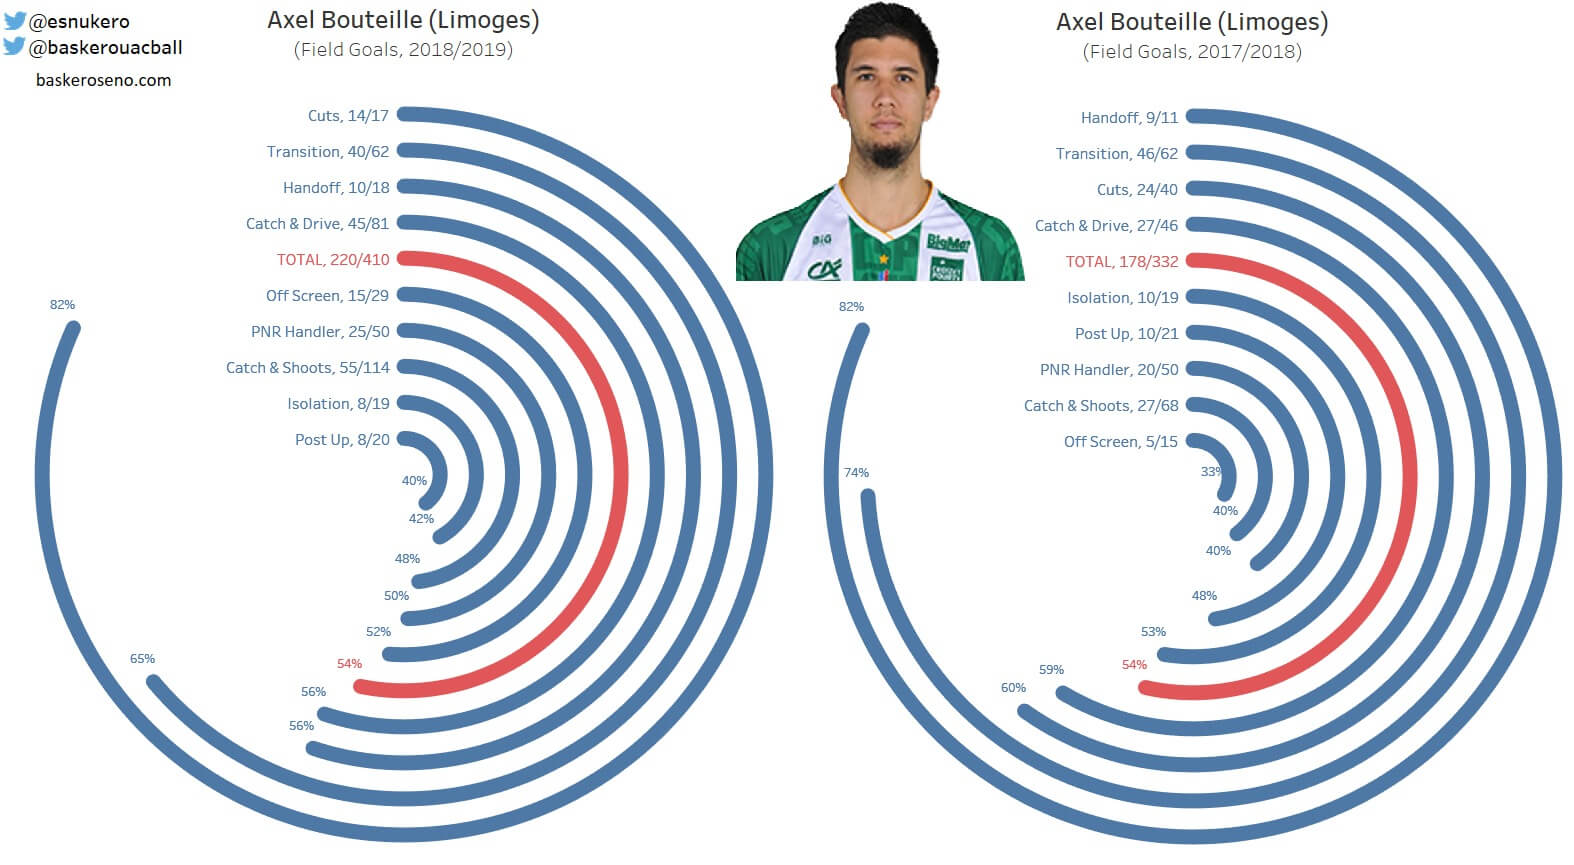 Axel Bouteille 2017-2018_2018-2019